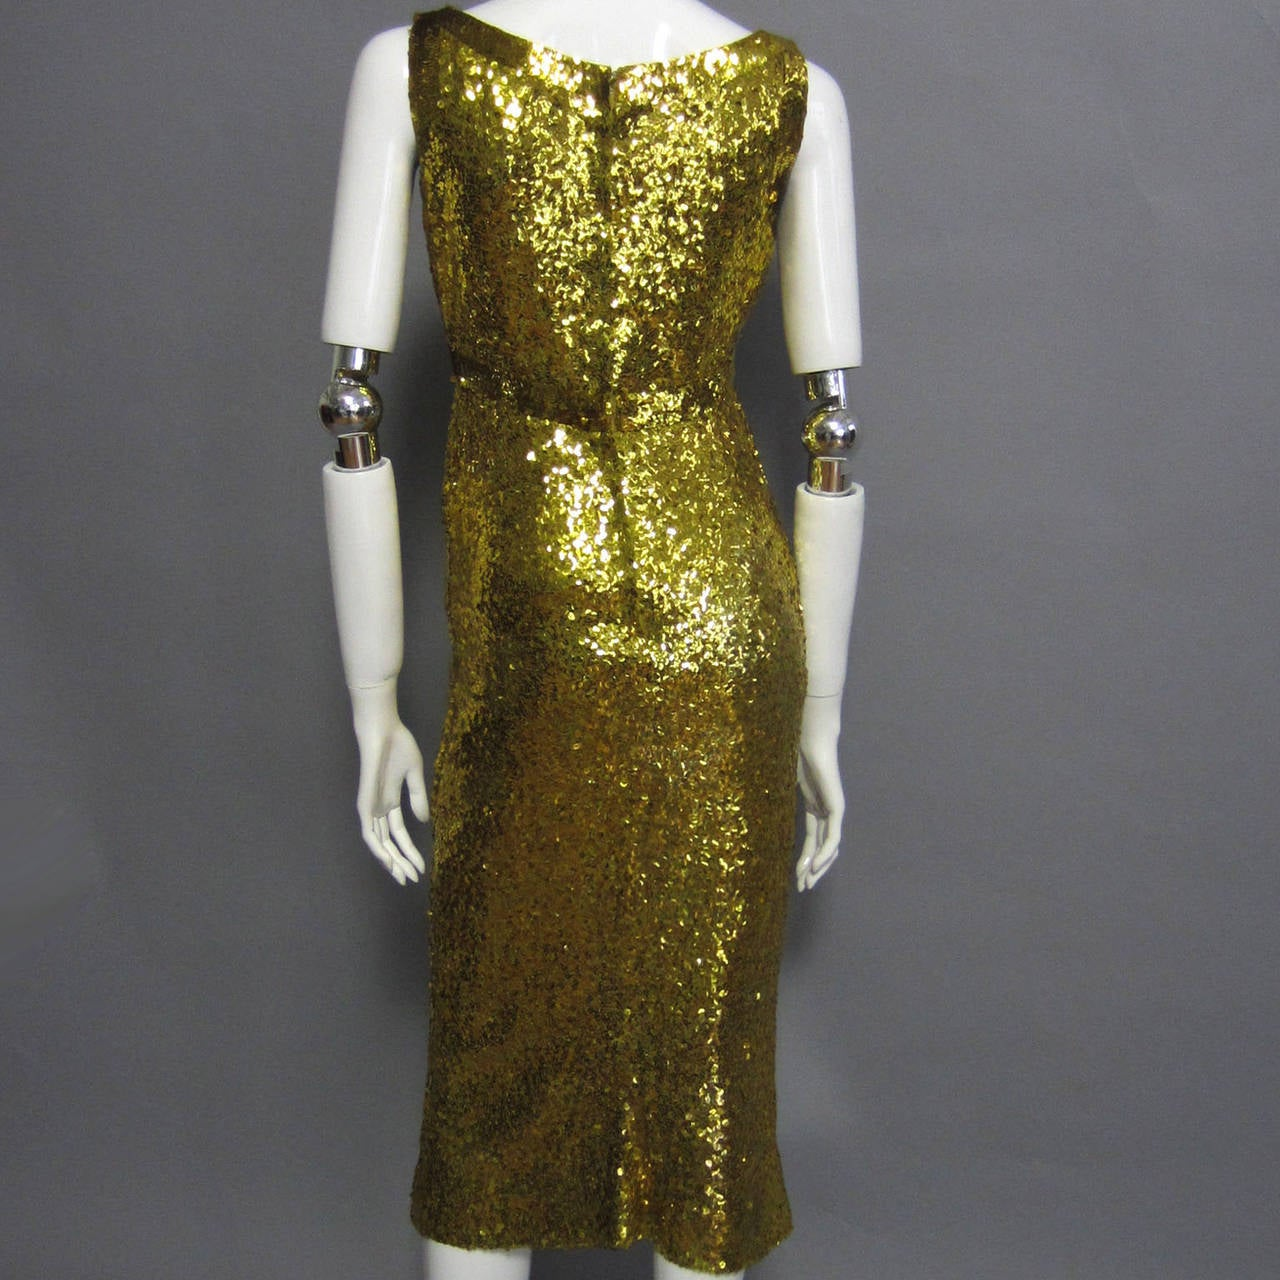 LILLIE RUBIN Sequin Knit Fitted Cocktail Dress In Excellent Condition For Sale In New York, NY